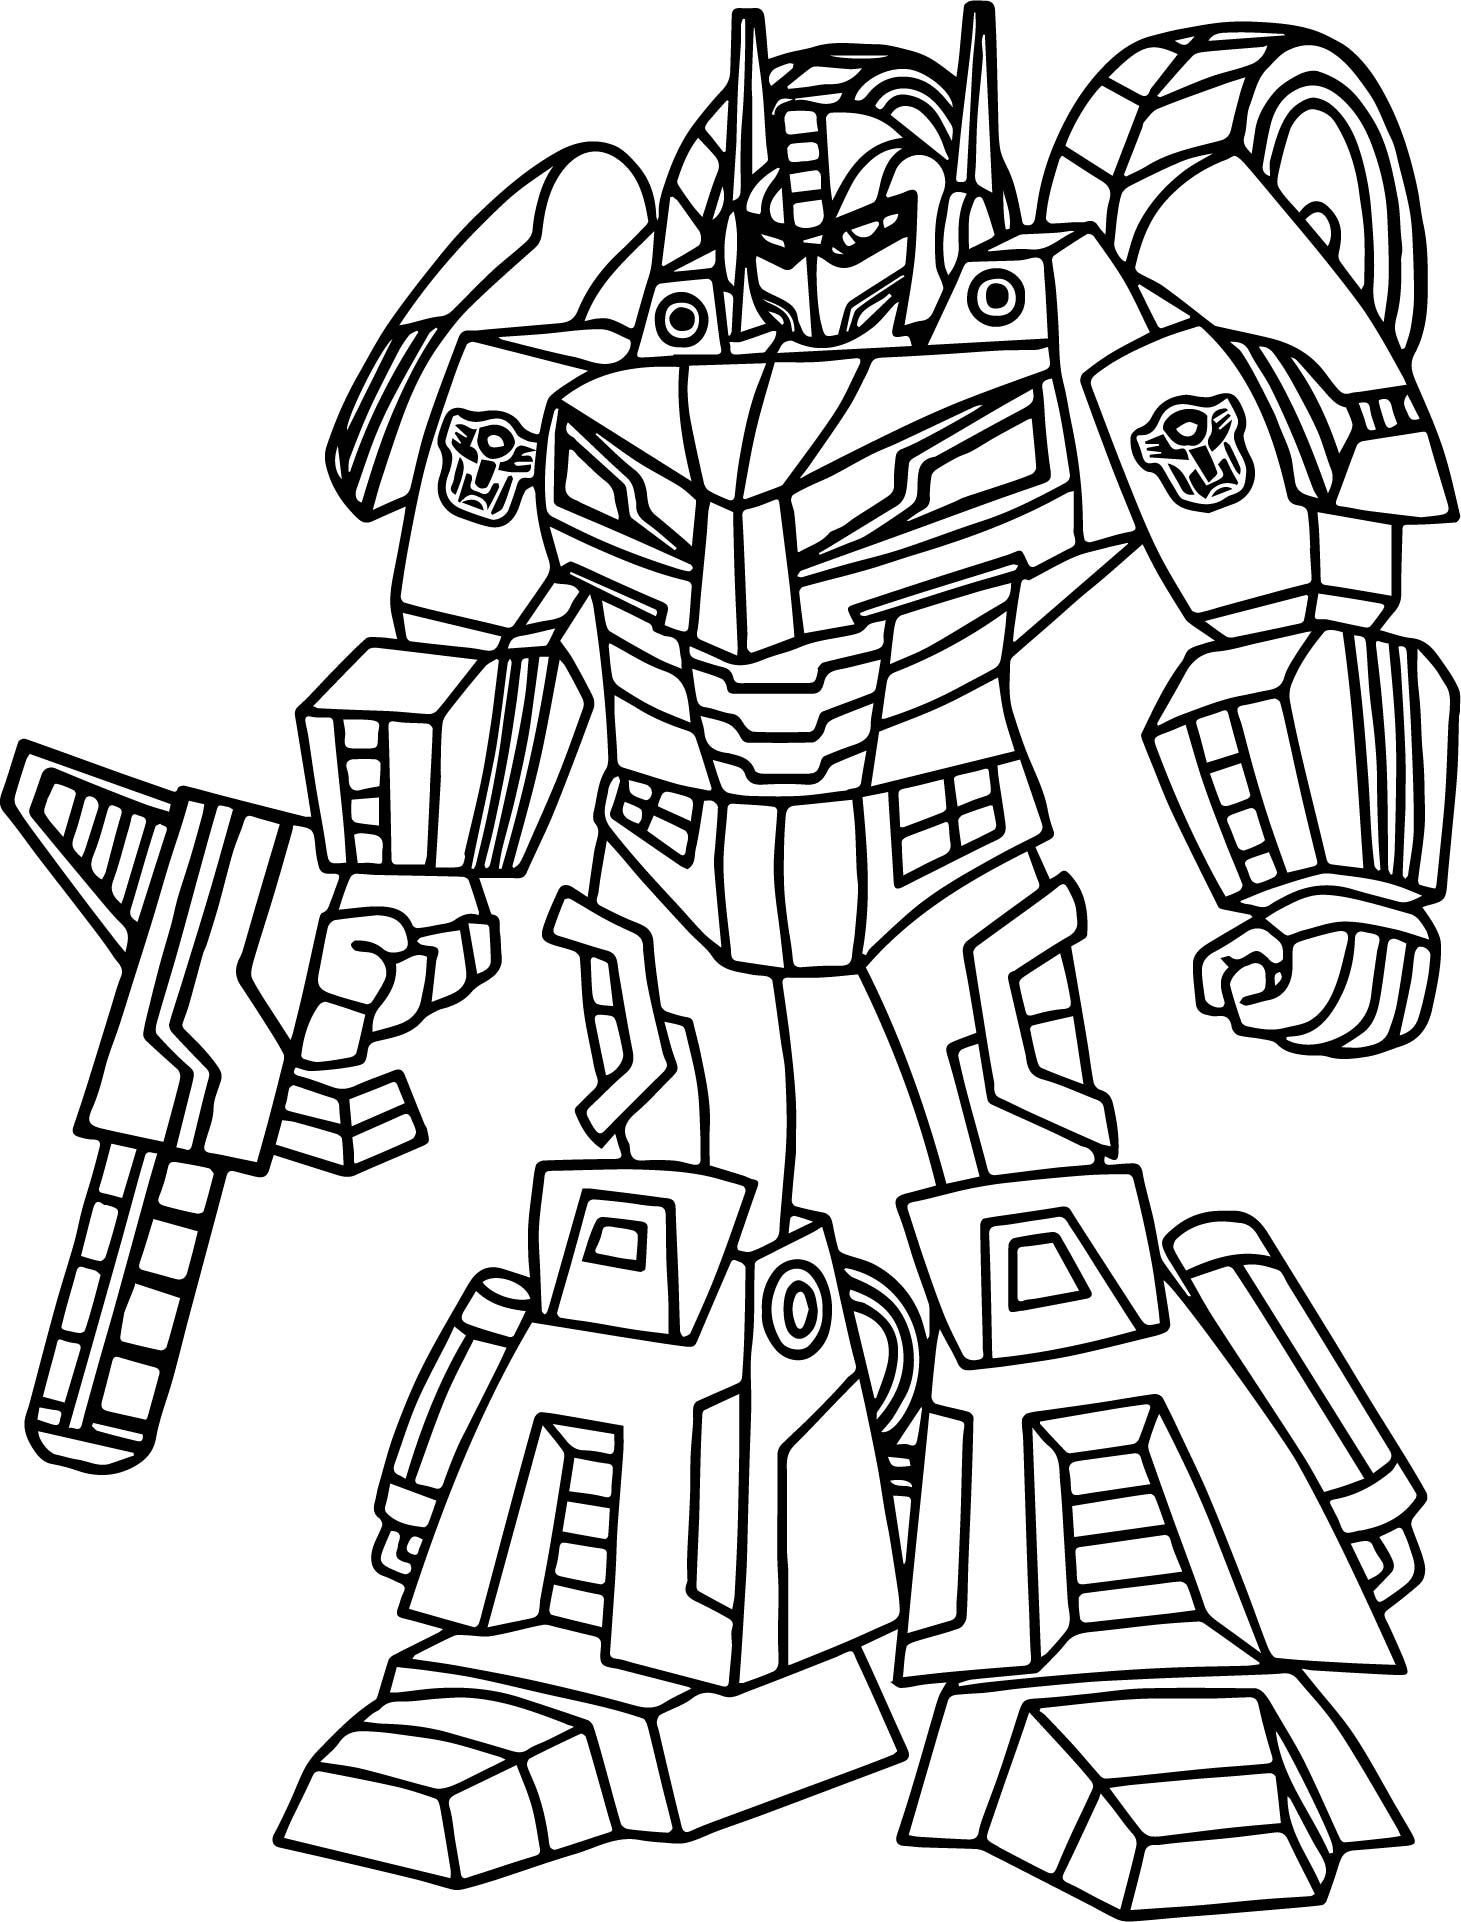 Outline Transformers Coloring Page | Wecoloringpage.com